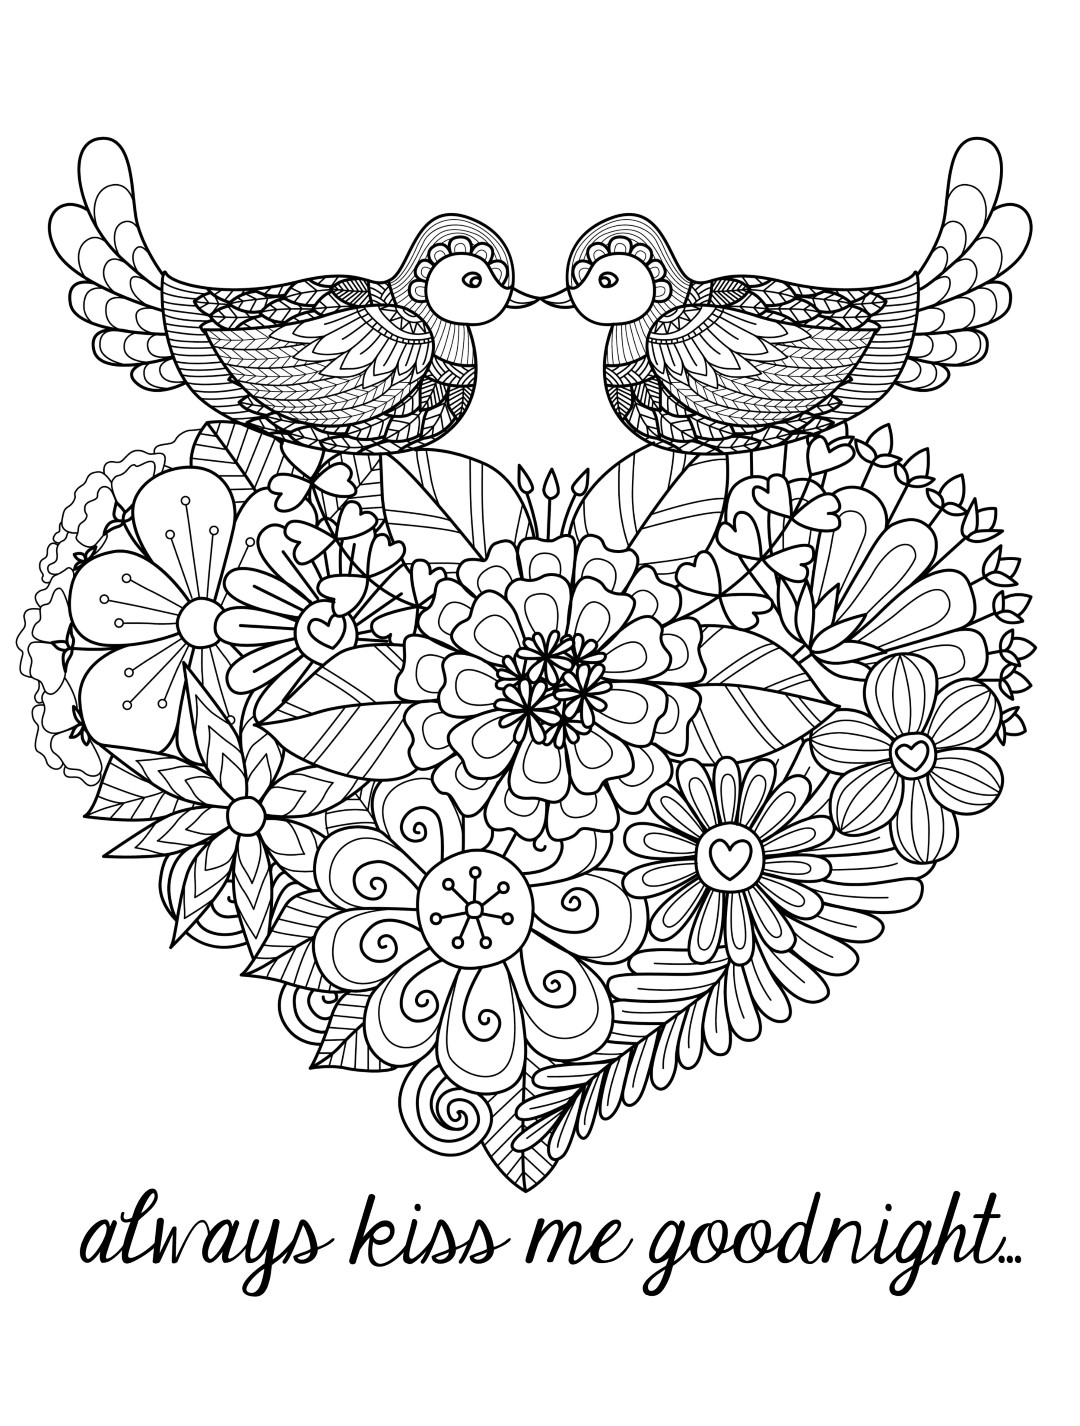 Love Birds Valentines Day Coloring Pages for Adults